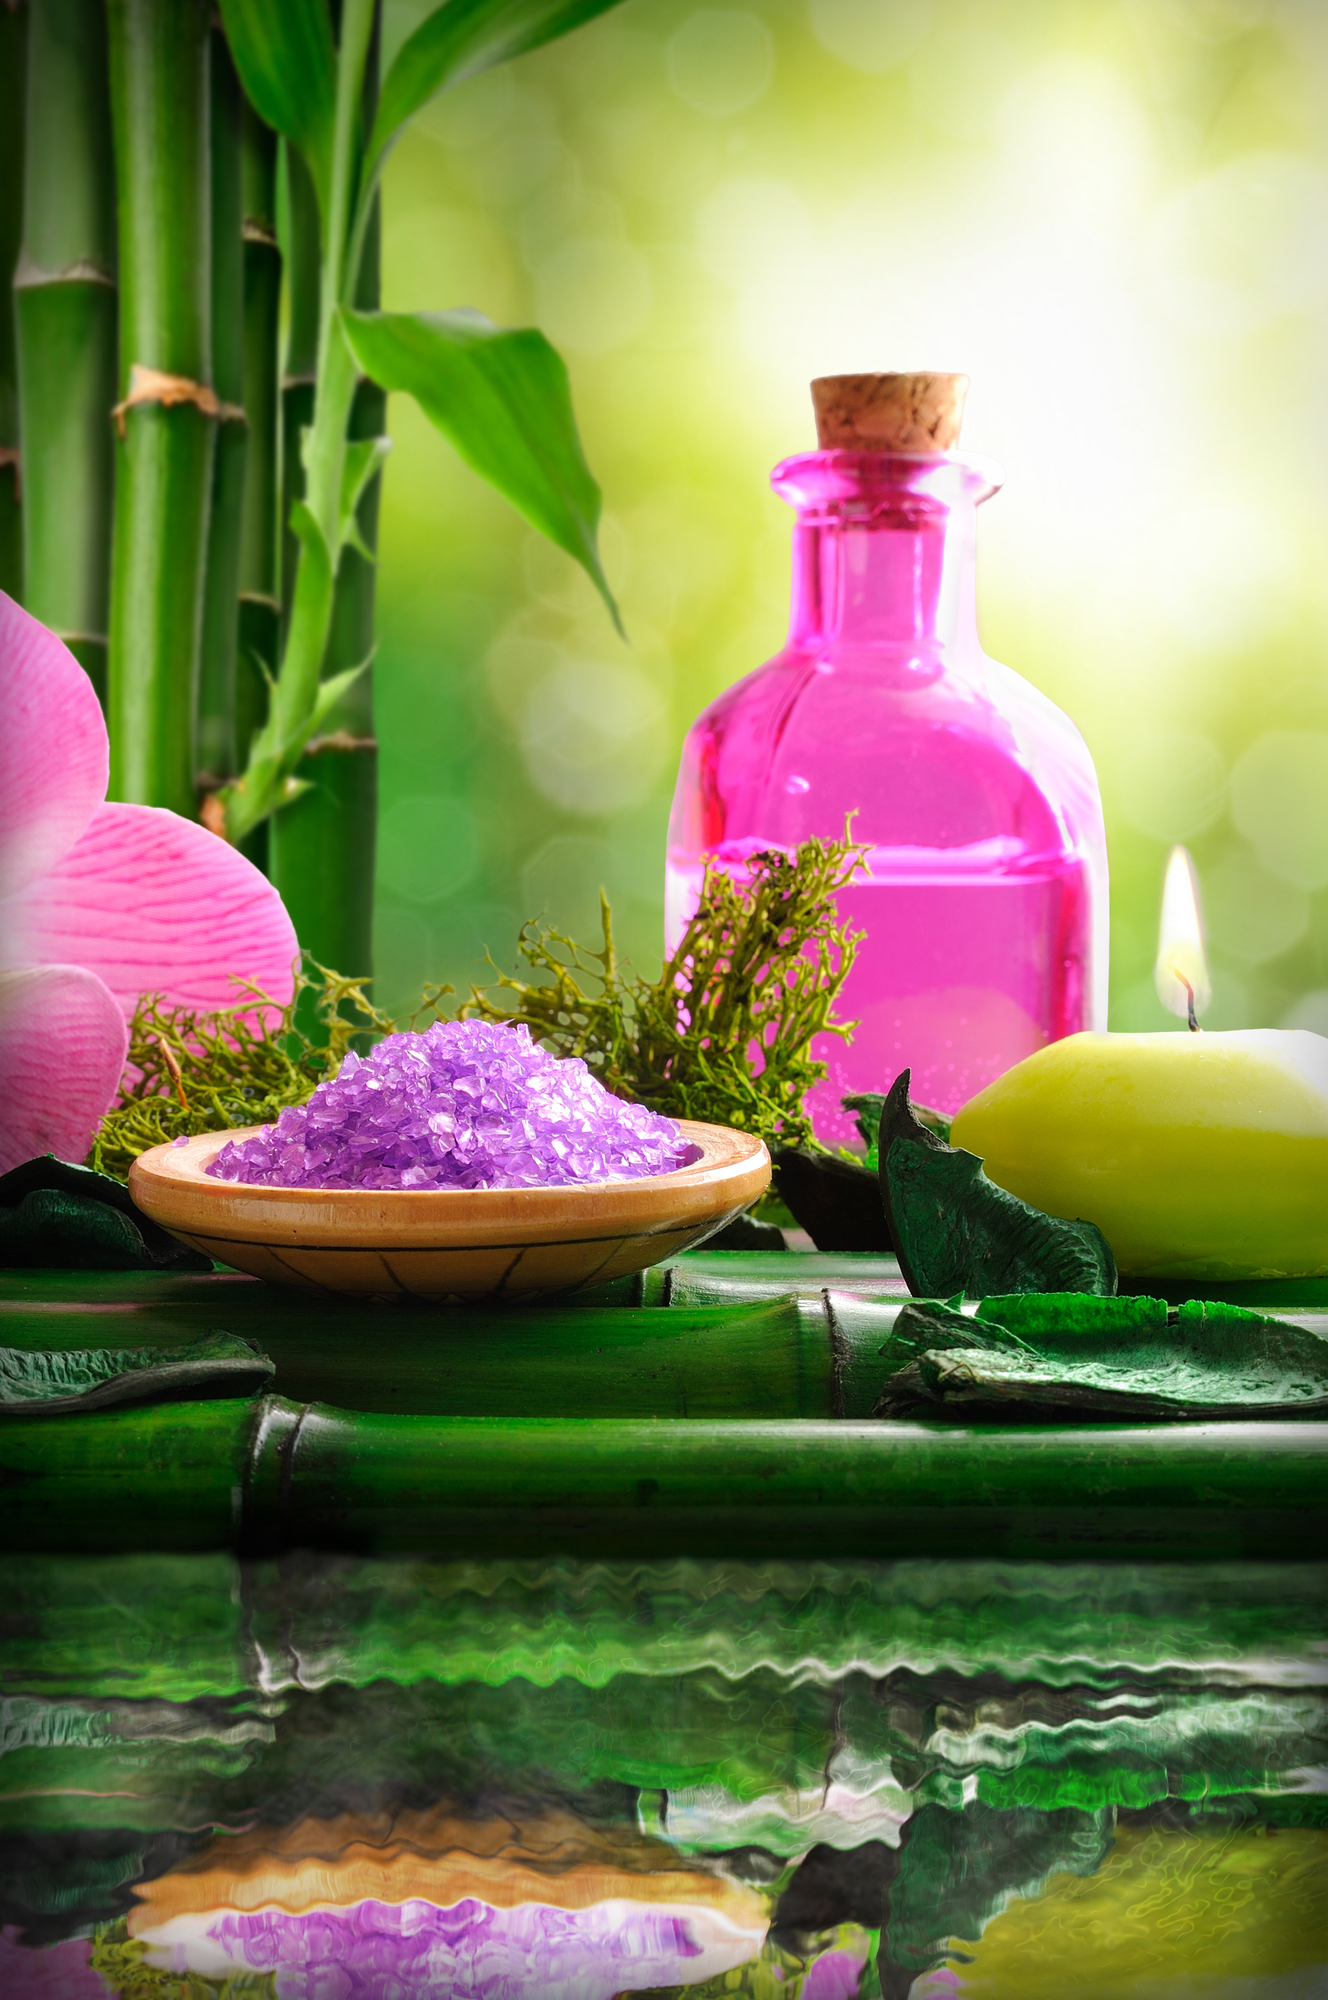 Alternative treatments of natural essences for body care vertica